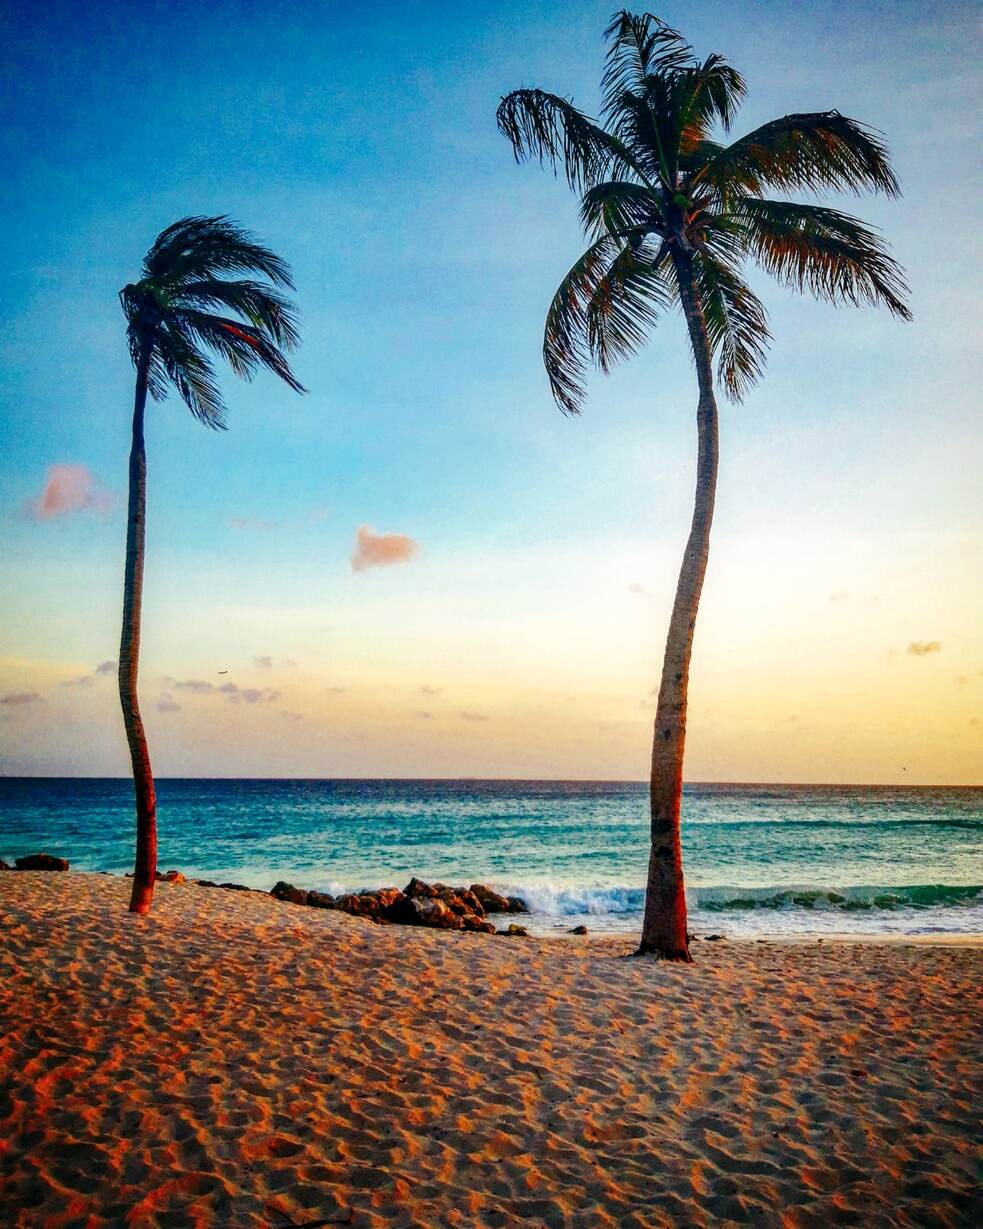 Sunset of the Caribbean sea in Aruba from the beach with 2 palm trees in the sand